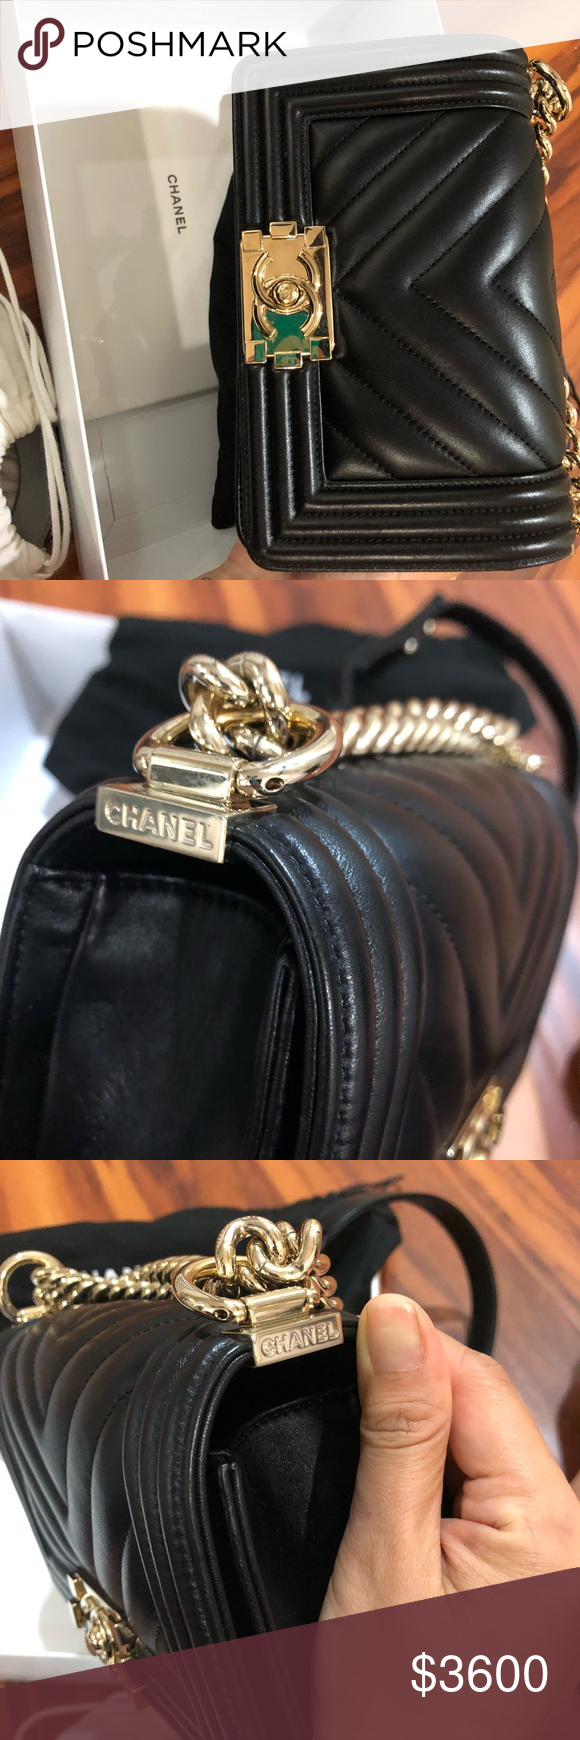 eb16ead8429e Chanel Boy Flapbag - Chervon/Black Like new, with dustbag, box and receipt  include, 100% authentic CHANEL Bags Crossbody Bags